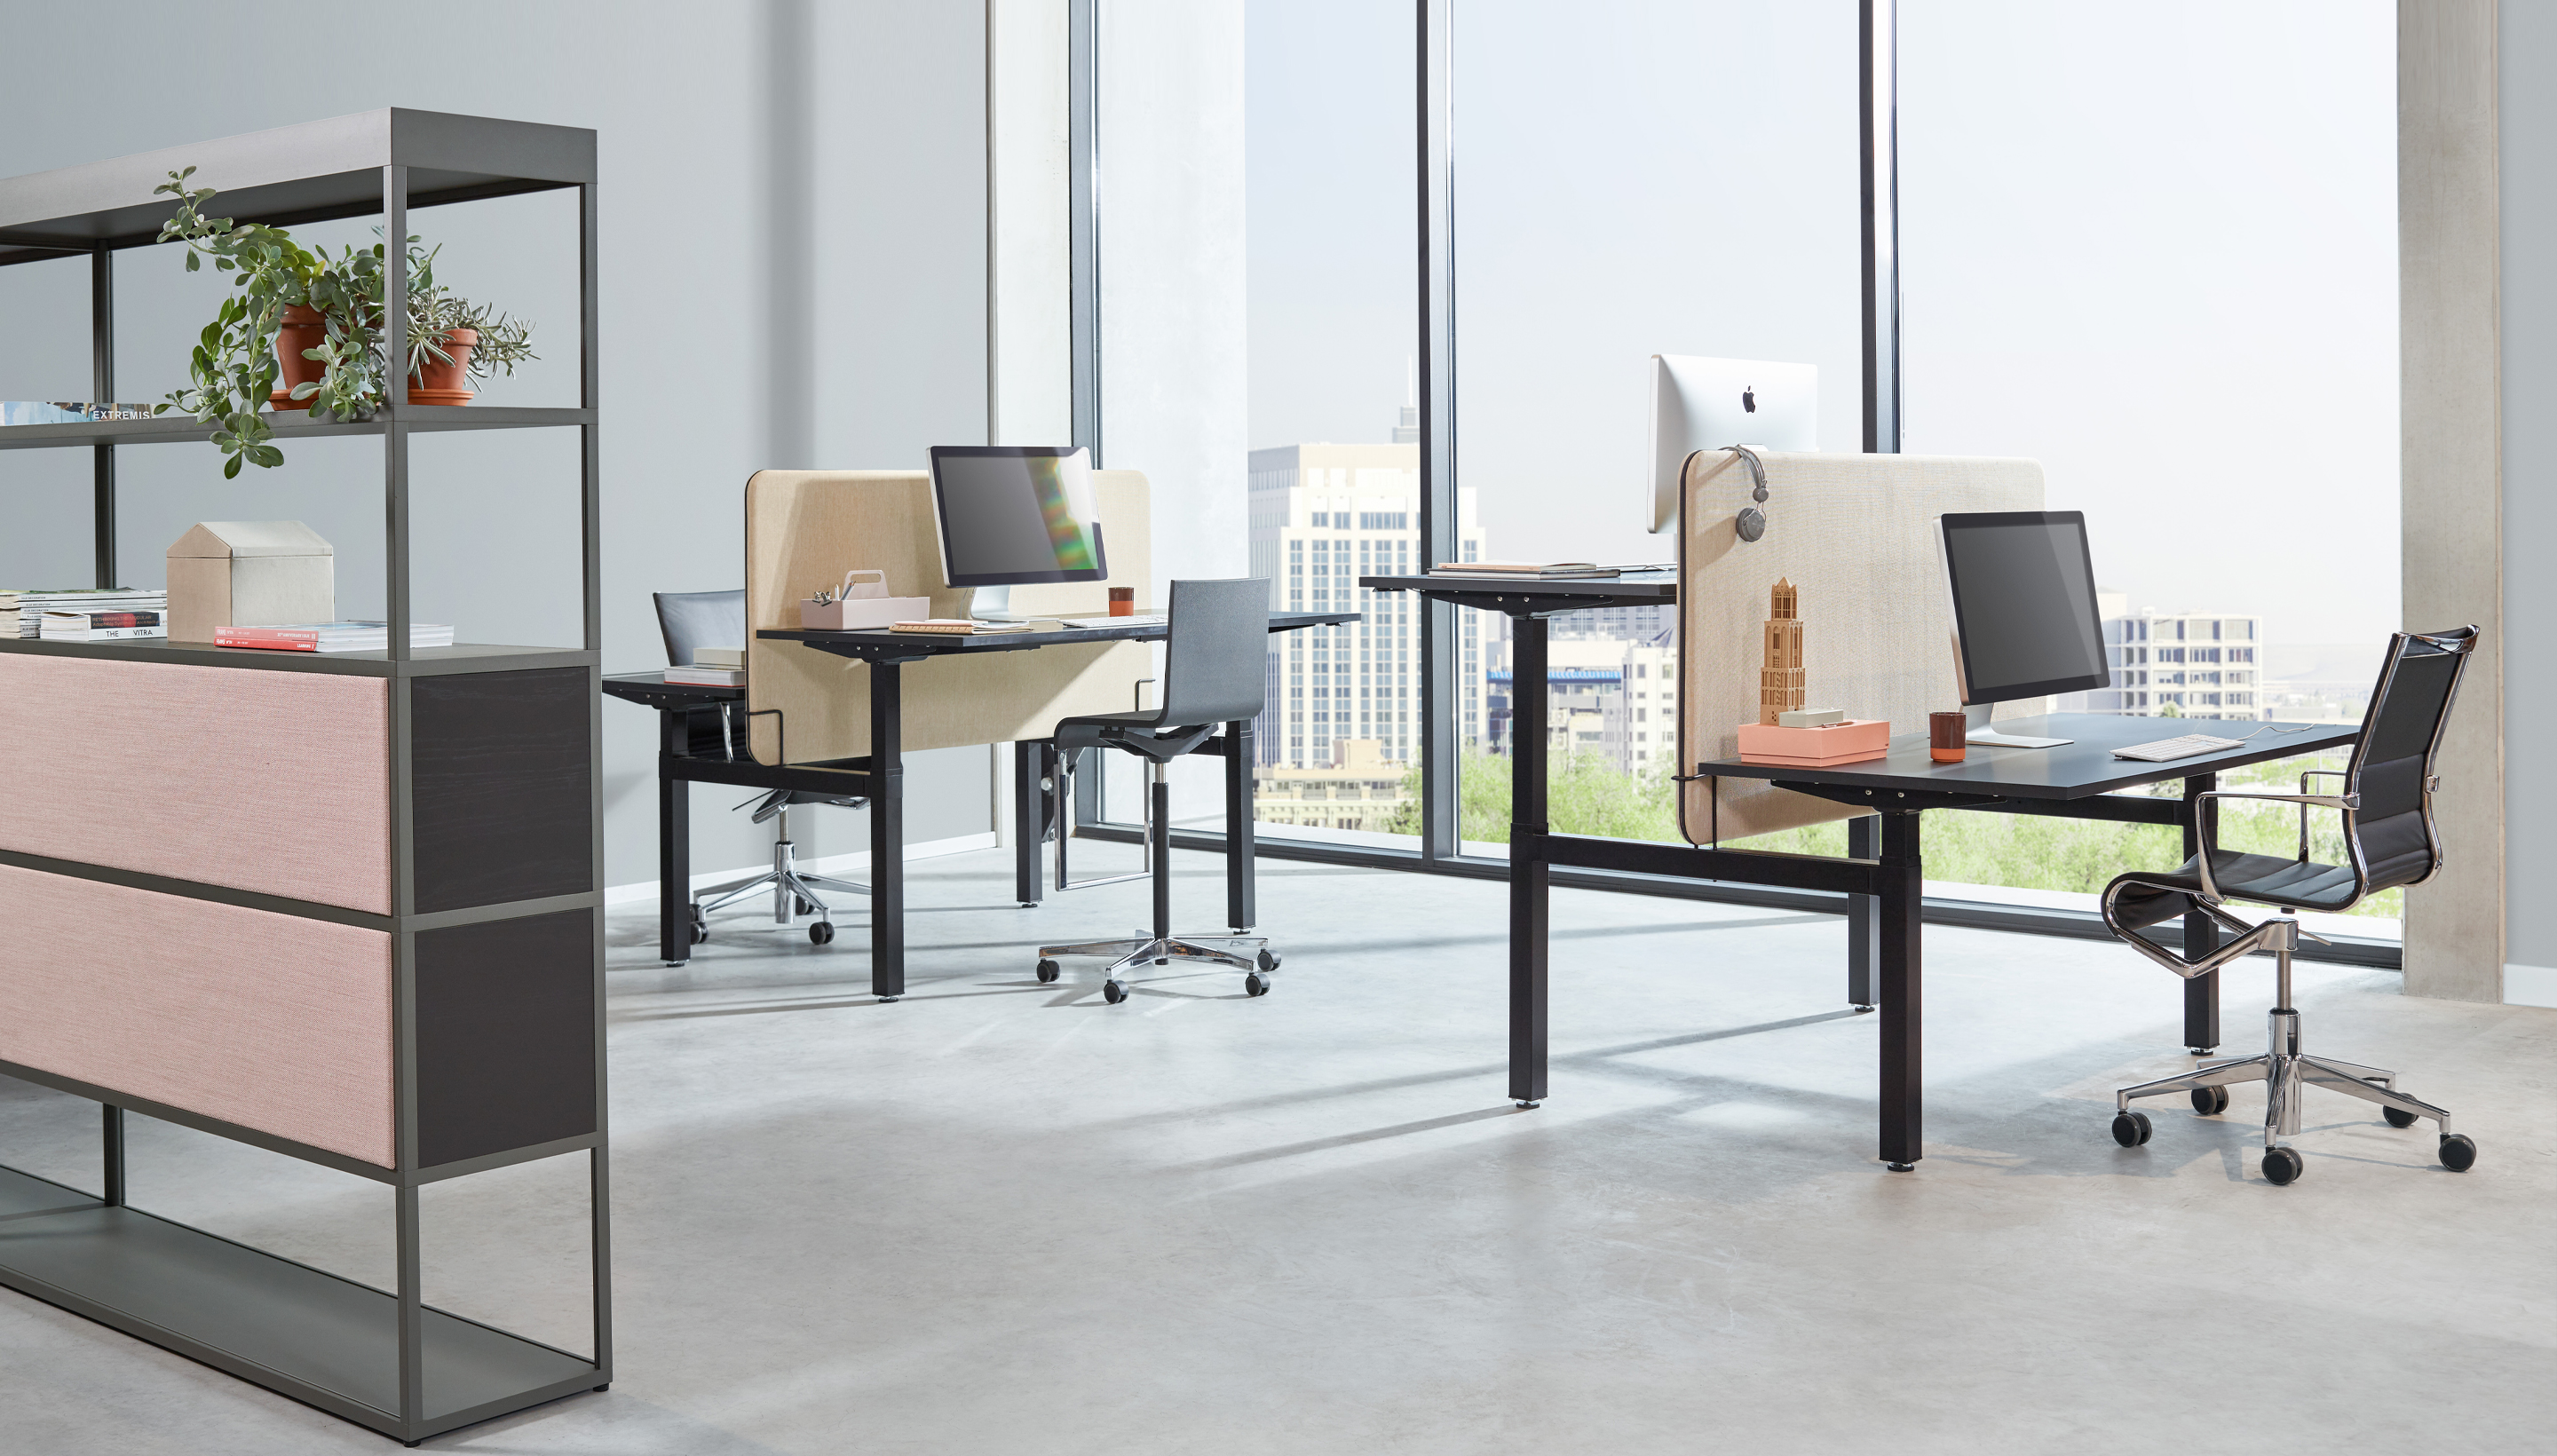 OUTLET | Workbrands Smart | Handkurbel | 168 x 79,5 cm | Fenix Tisch